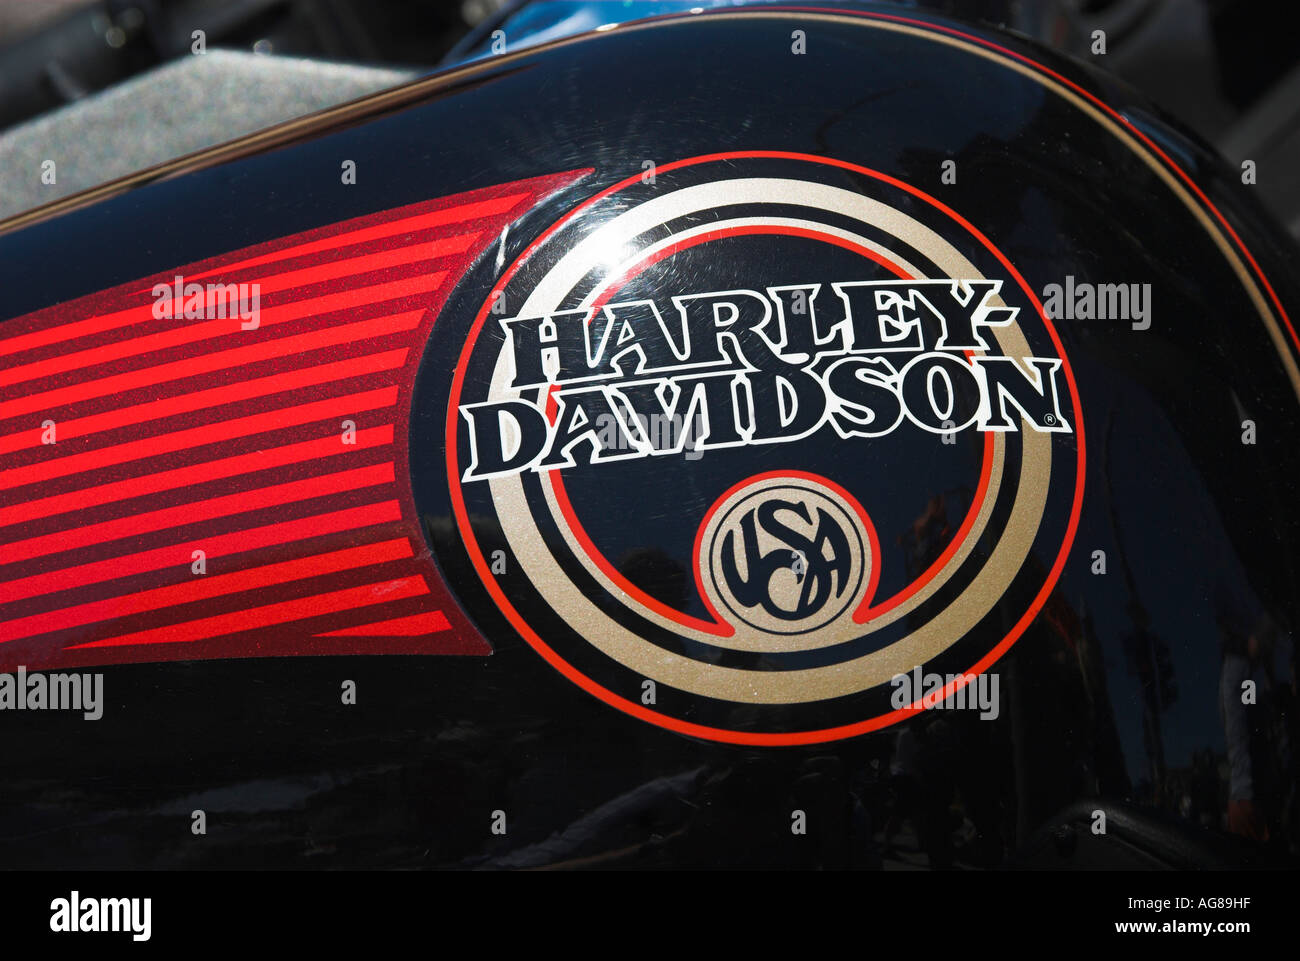 harley davidson 3 essay Harley-davidson, inc is the parent company for the groups of companies doing business as harley-davidson motor company (hdmc) and harley-davidson financial services (hdfs.